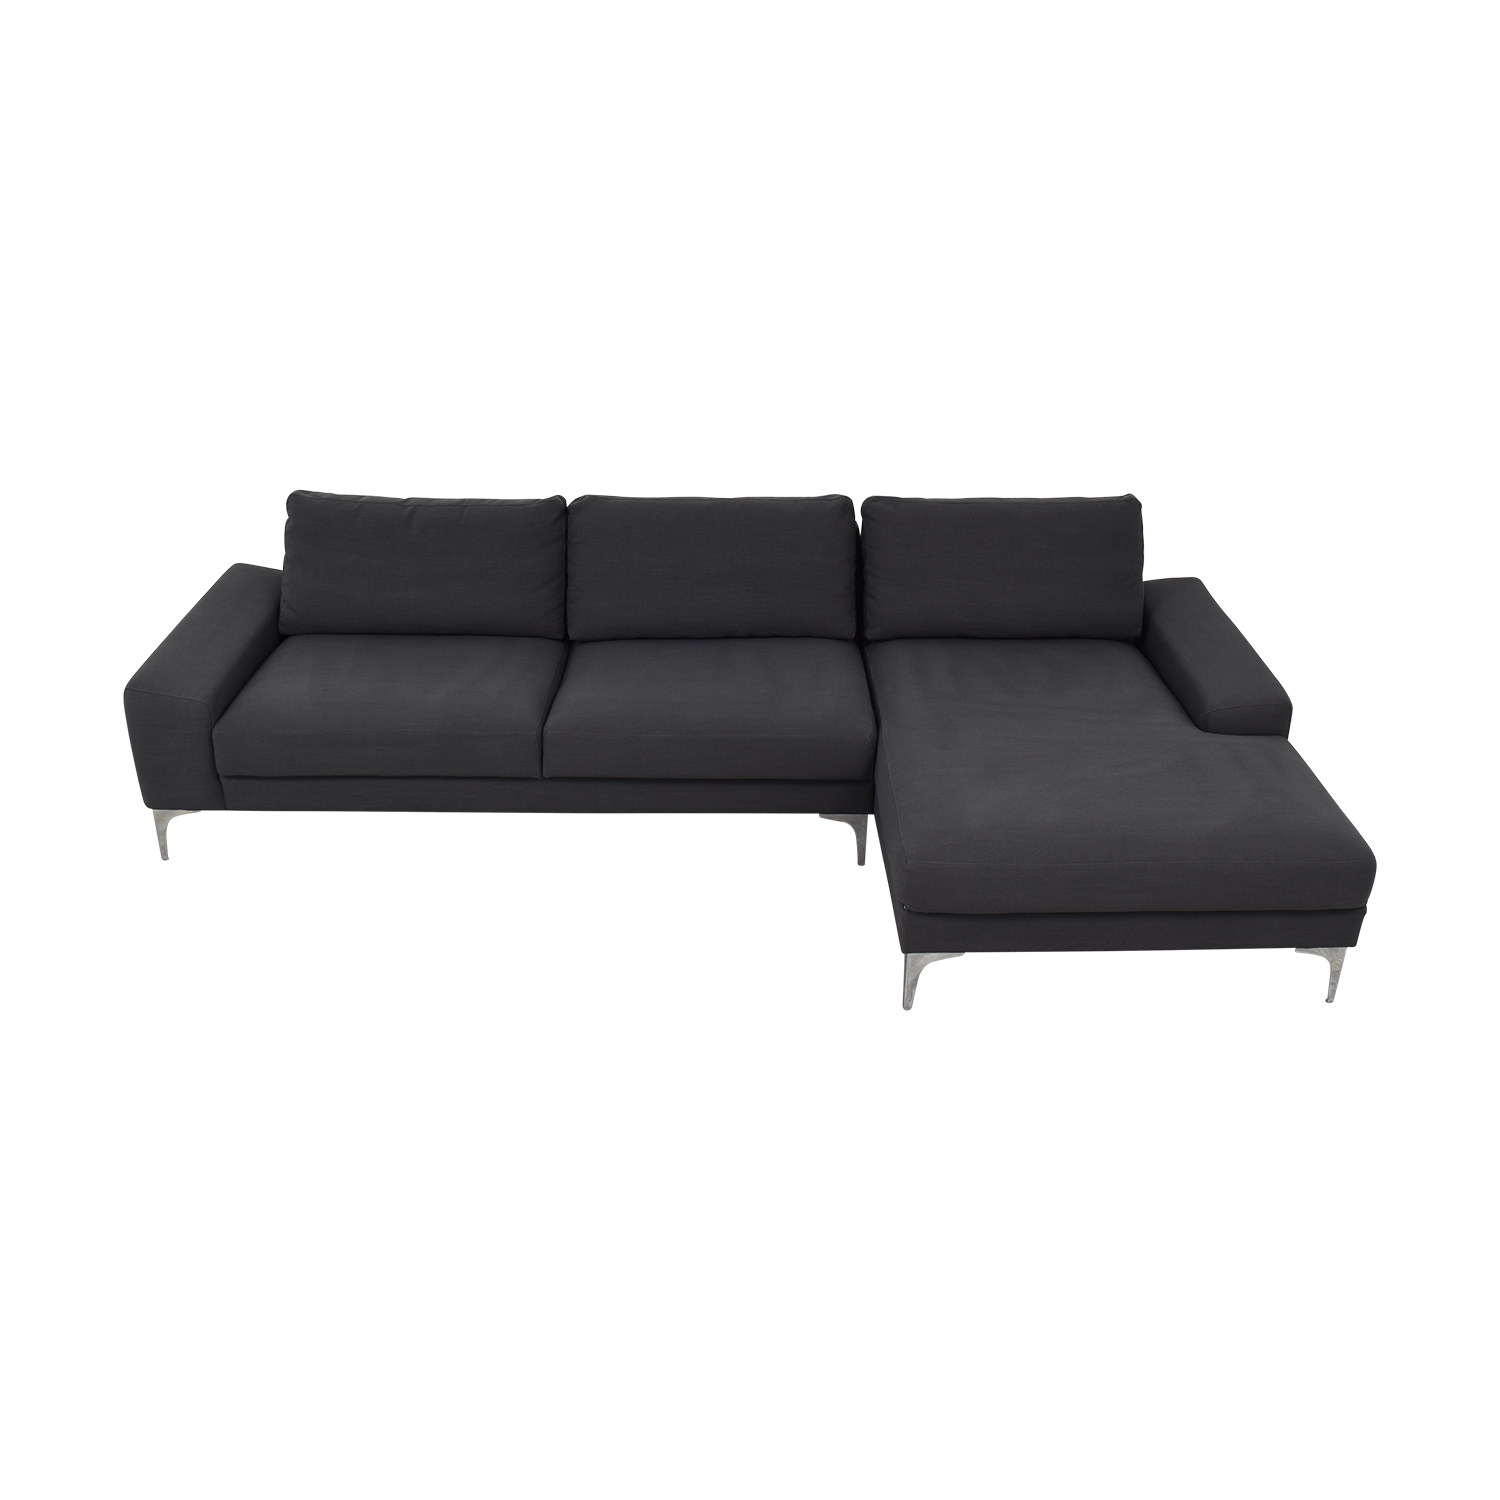 Industry West Sectional Sofa sale